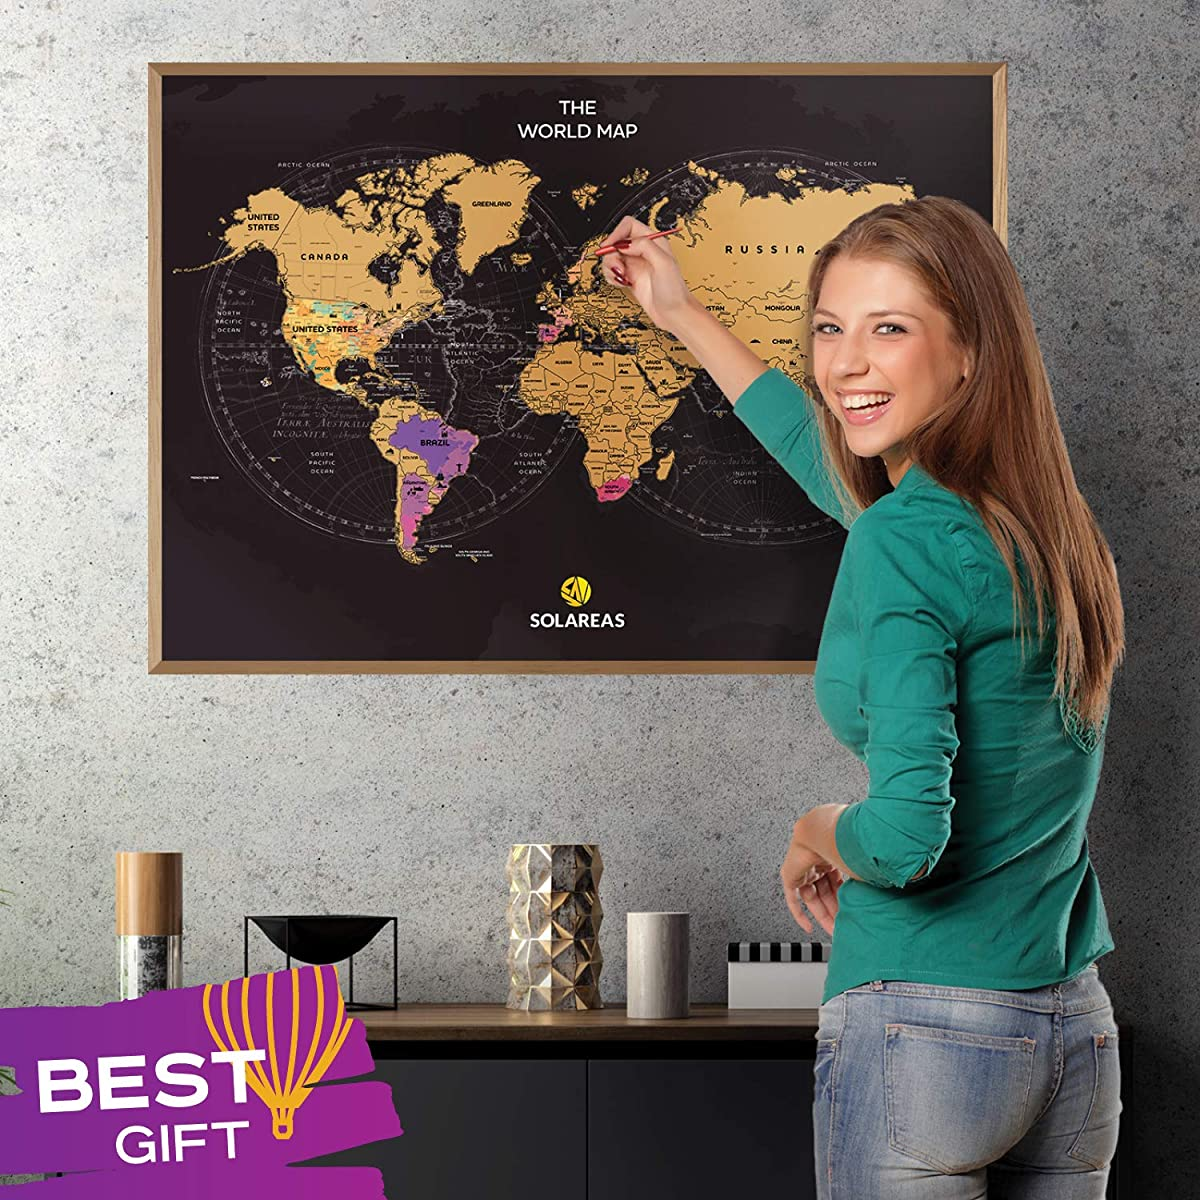 Solareas Scratch Off Map of The World - 33x23 Travel Tracker Maps Gift for Travelers - Unique Packaging - World Map Scratch Off Poster with Us States - Cool Trip Color Wall Decor Print Presents Ideas